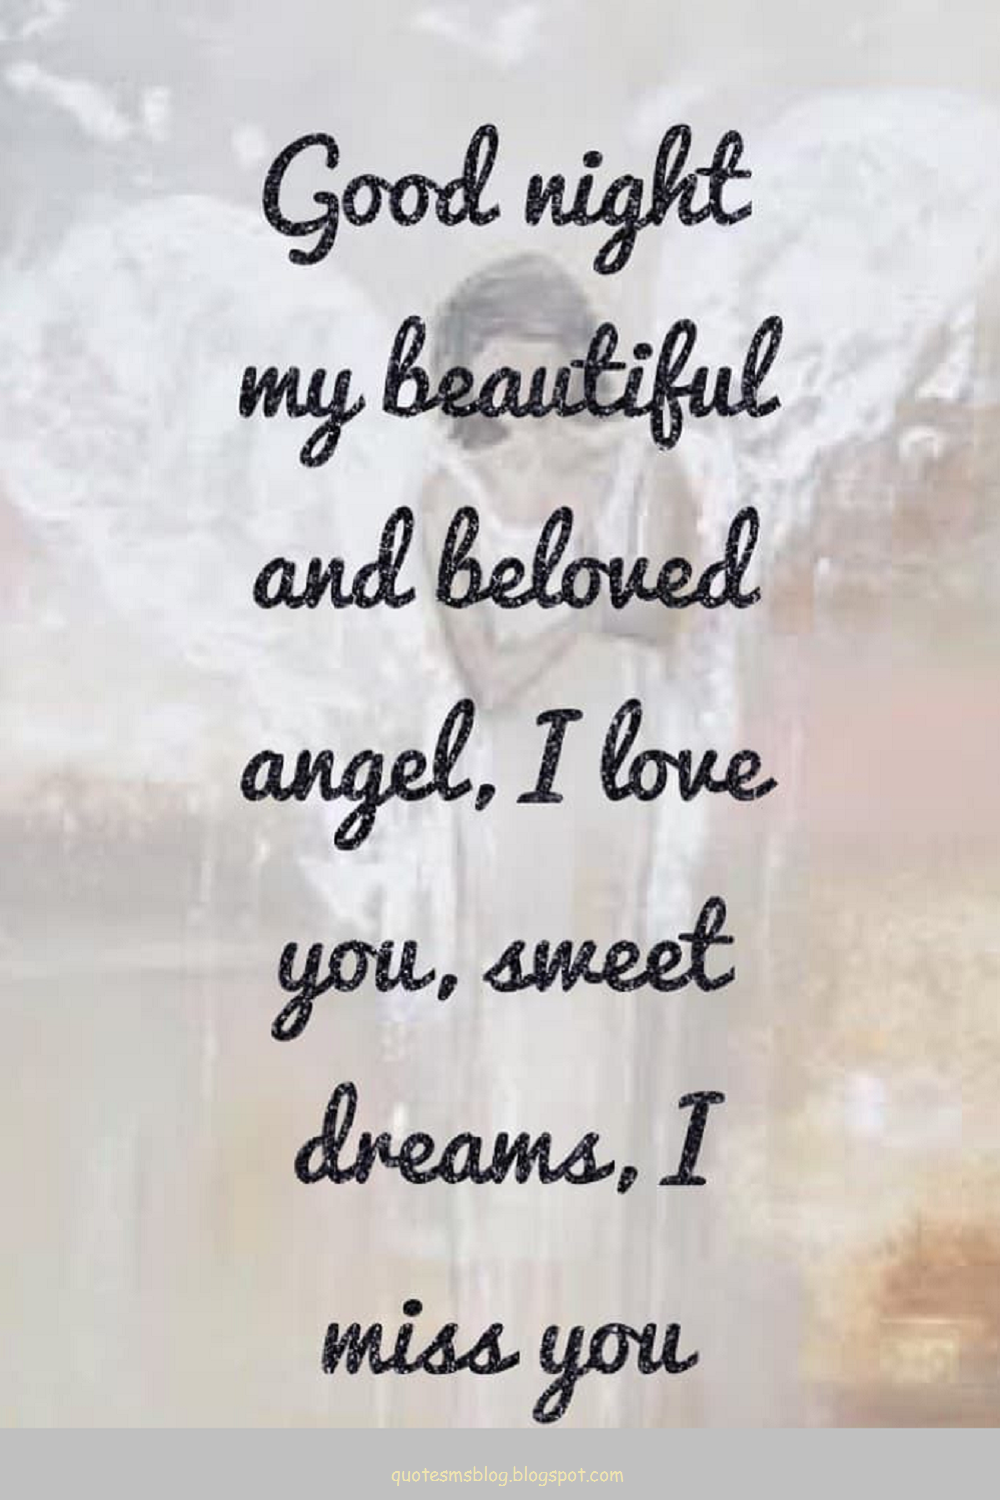 Good Night Quotes Good Night Message For Her Sweet Dream Quotes Romantic Good Night Sweet Dreams My Love